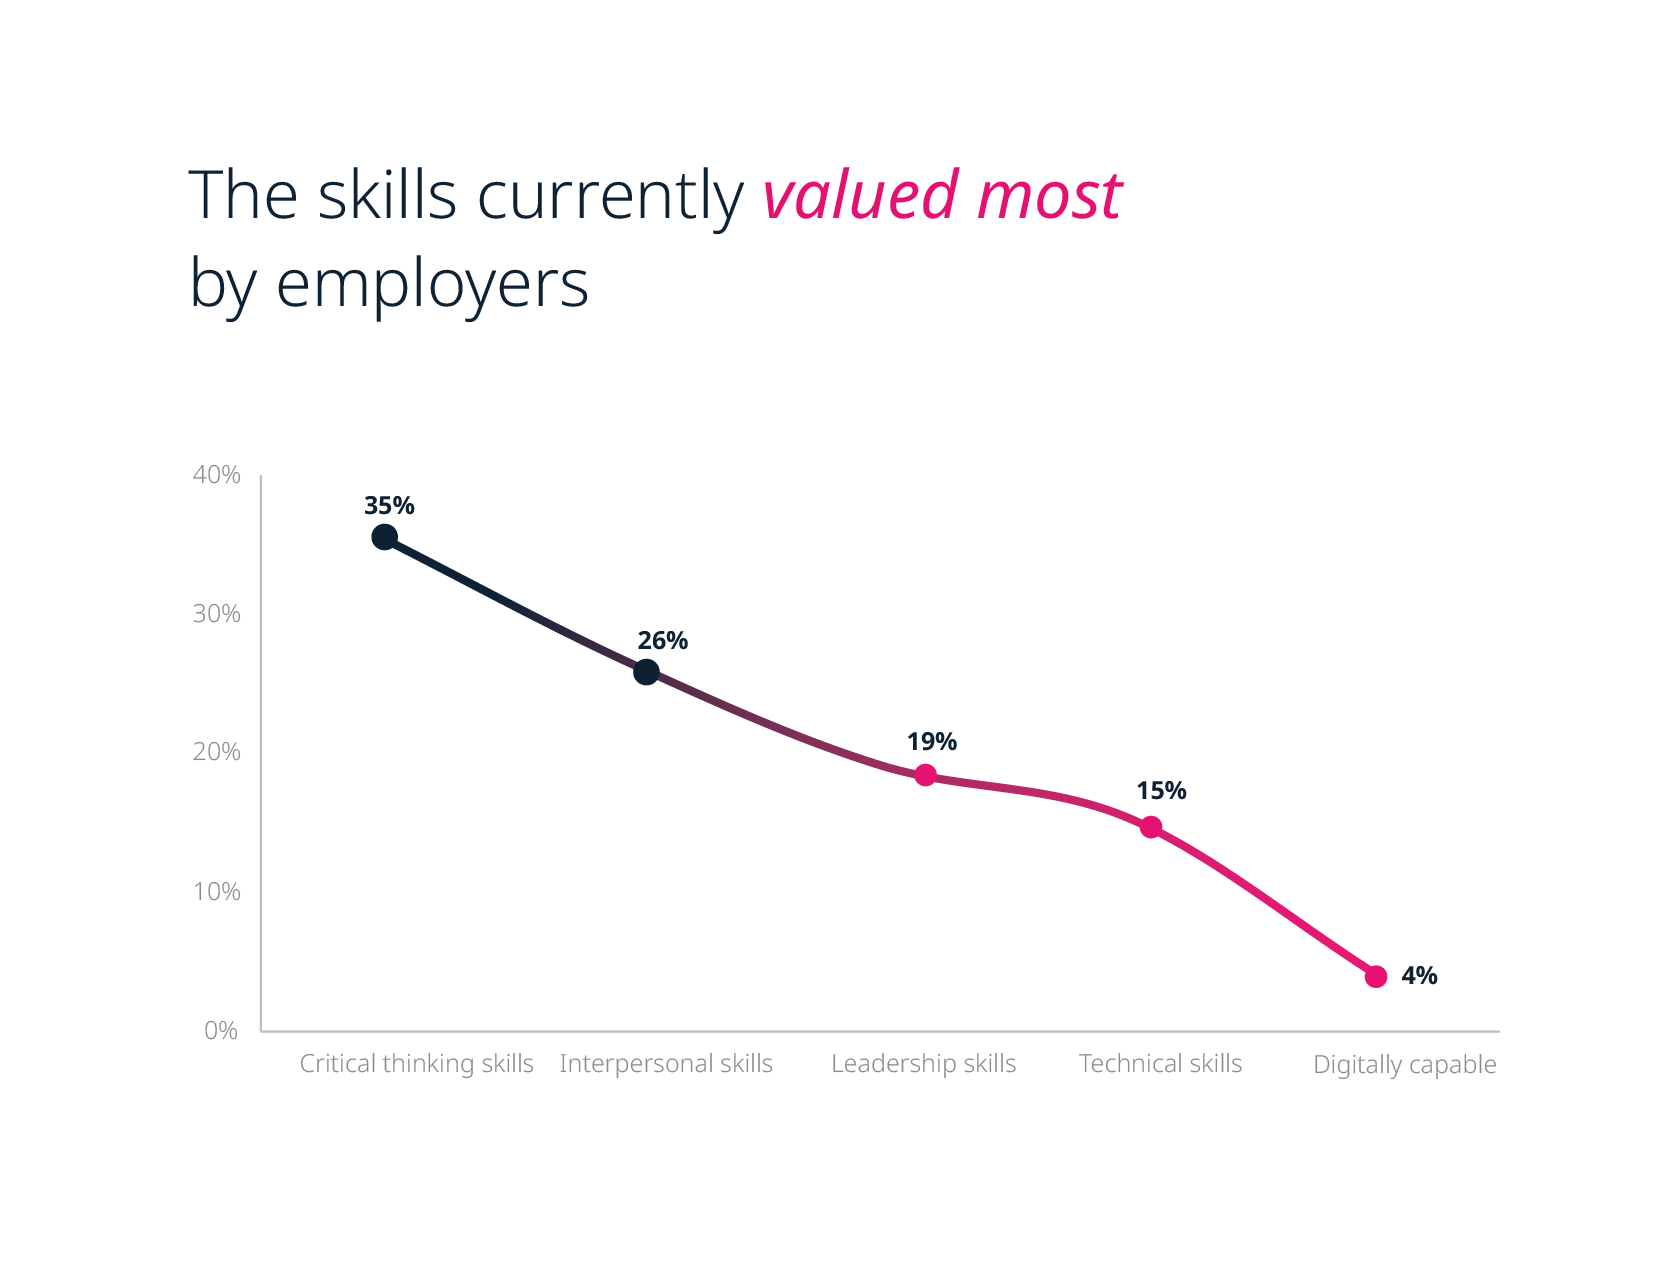 The skills currently valued by most employers